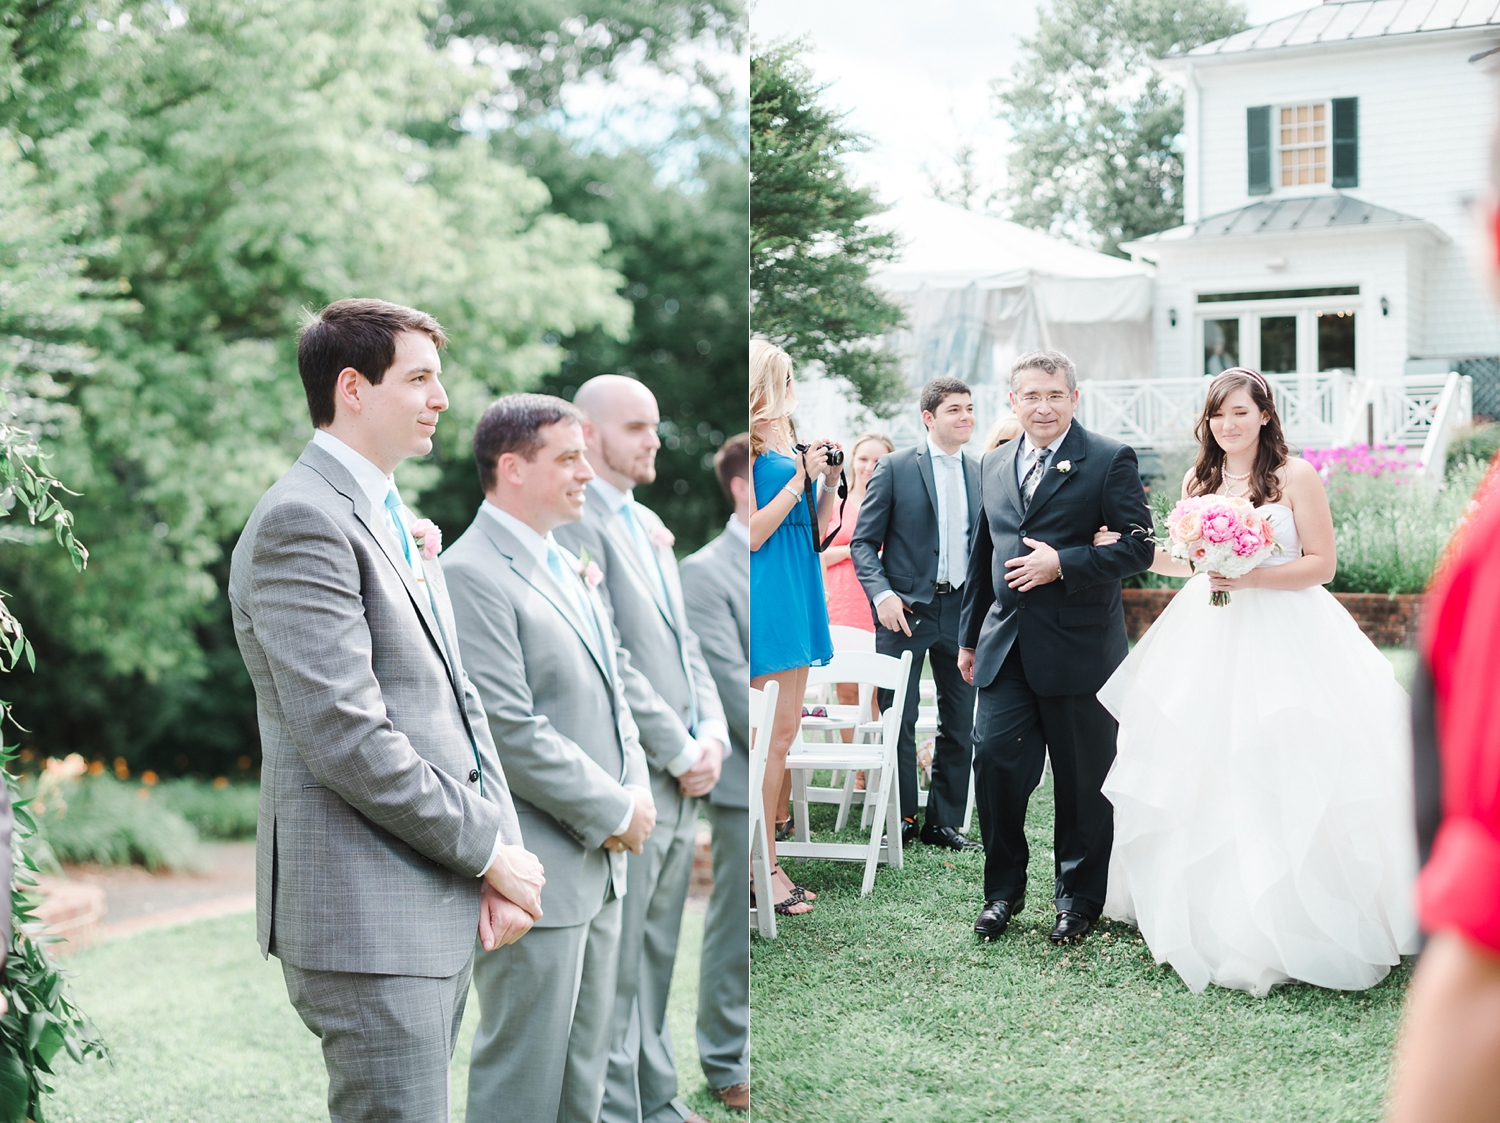 clifton_inn_charlottesville_wedding_0109.jpg